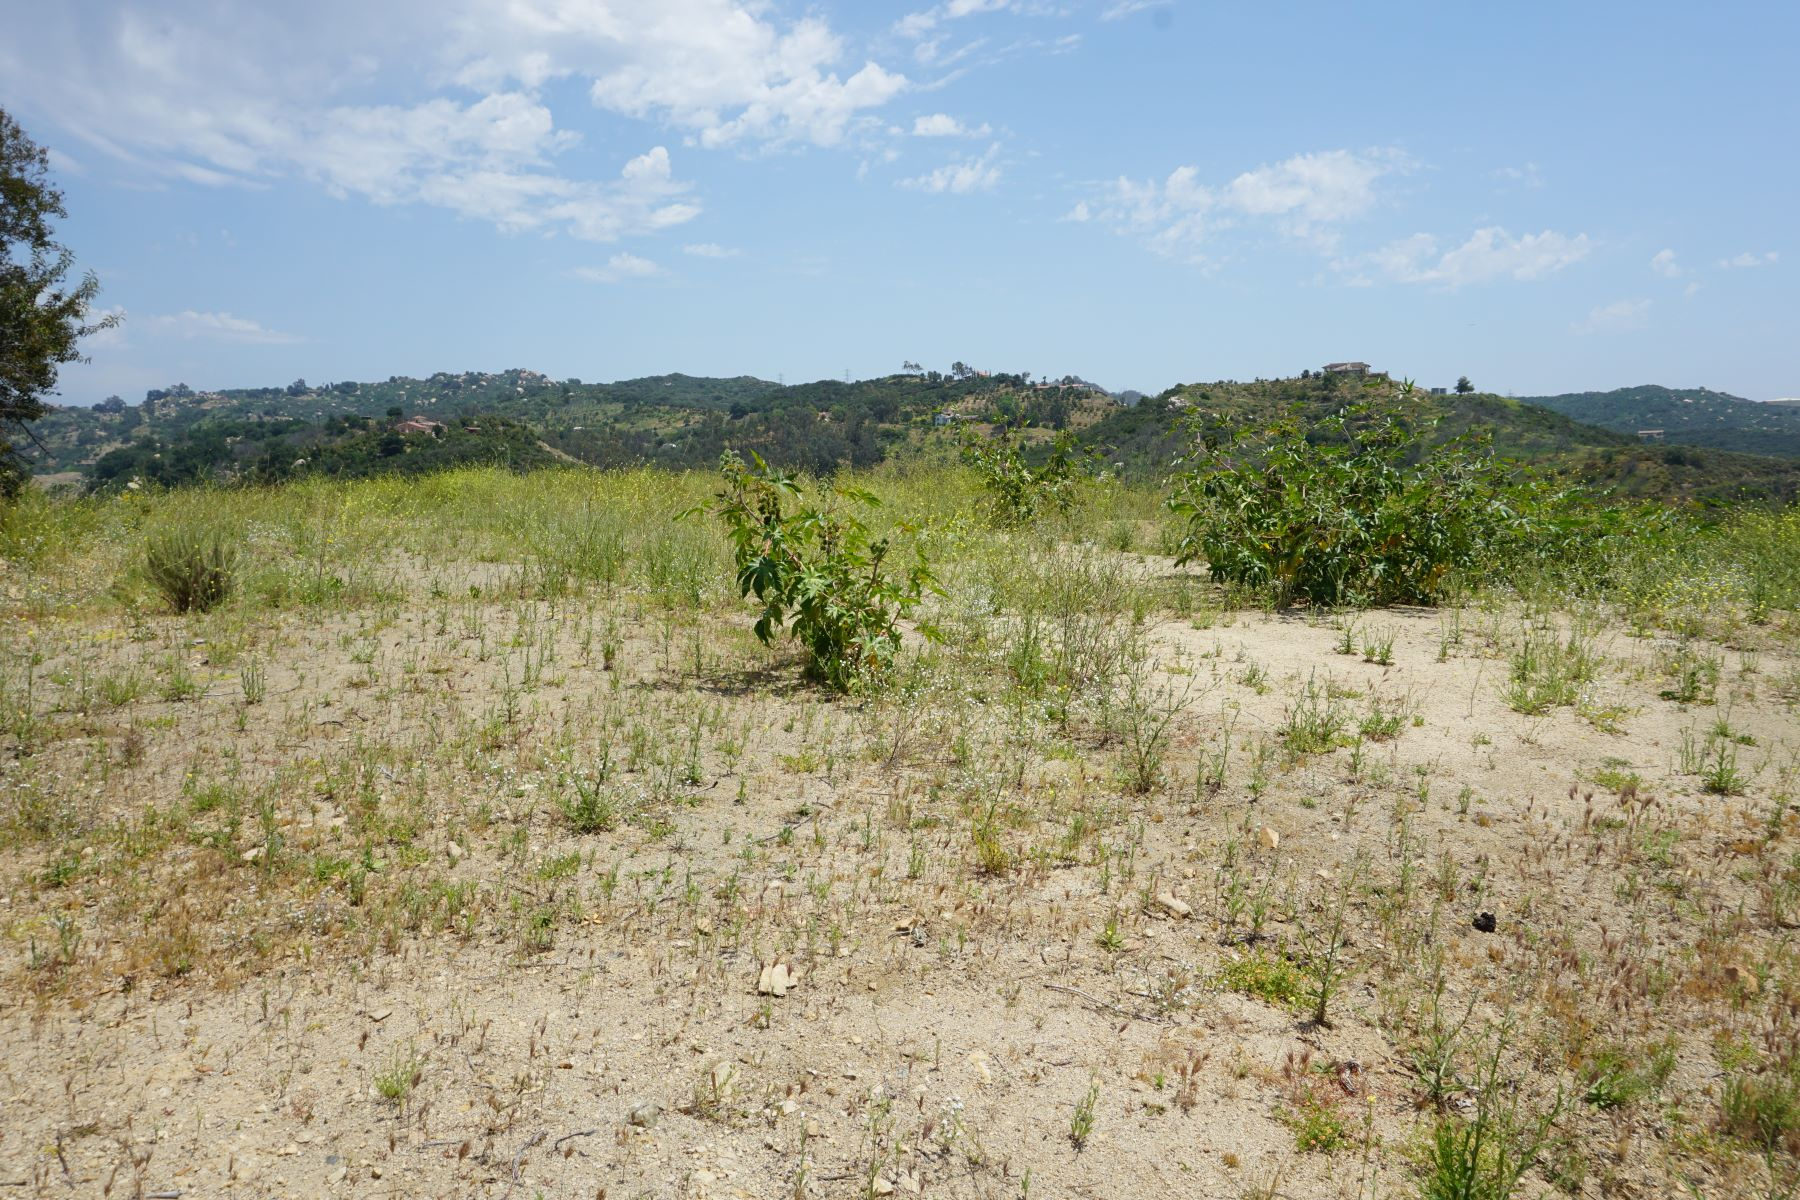 Land for Sale at Land in Fallbrook with Views! 0000 Glenn Road 07 Fallbrook, California 92078 United States